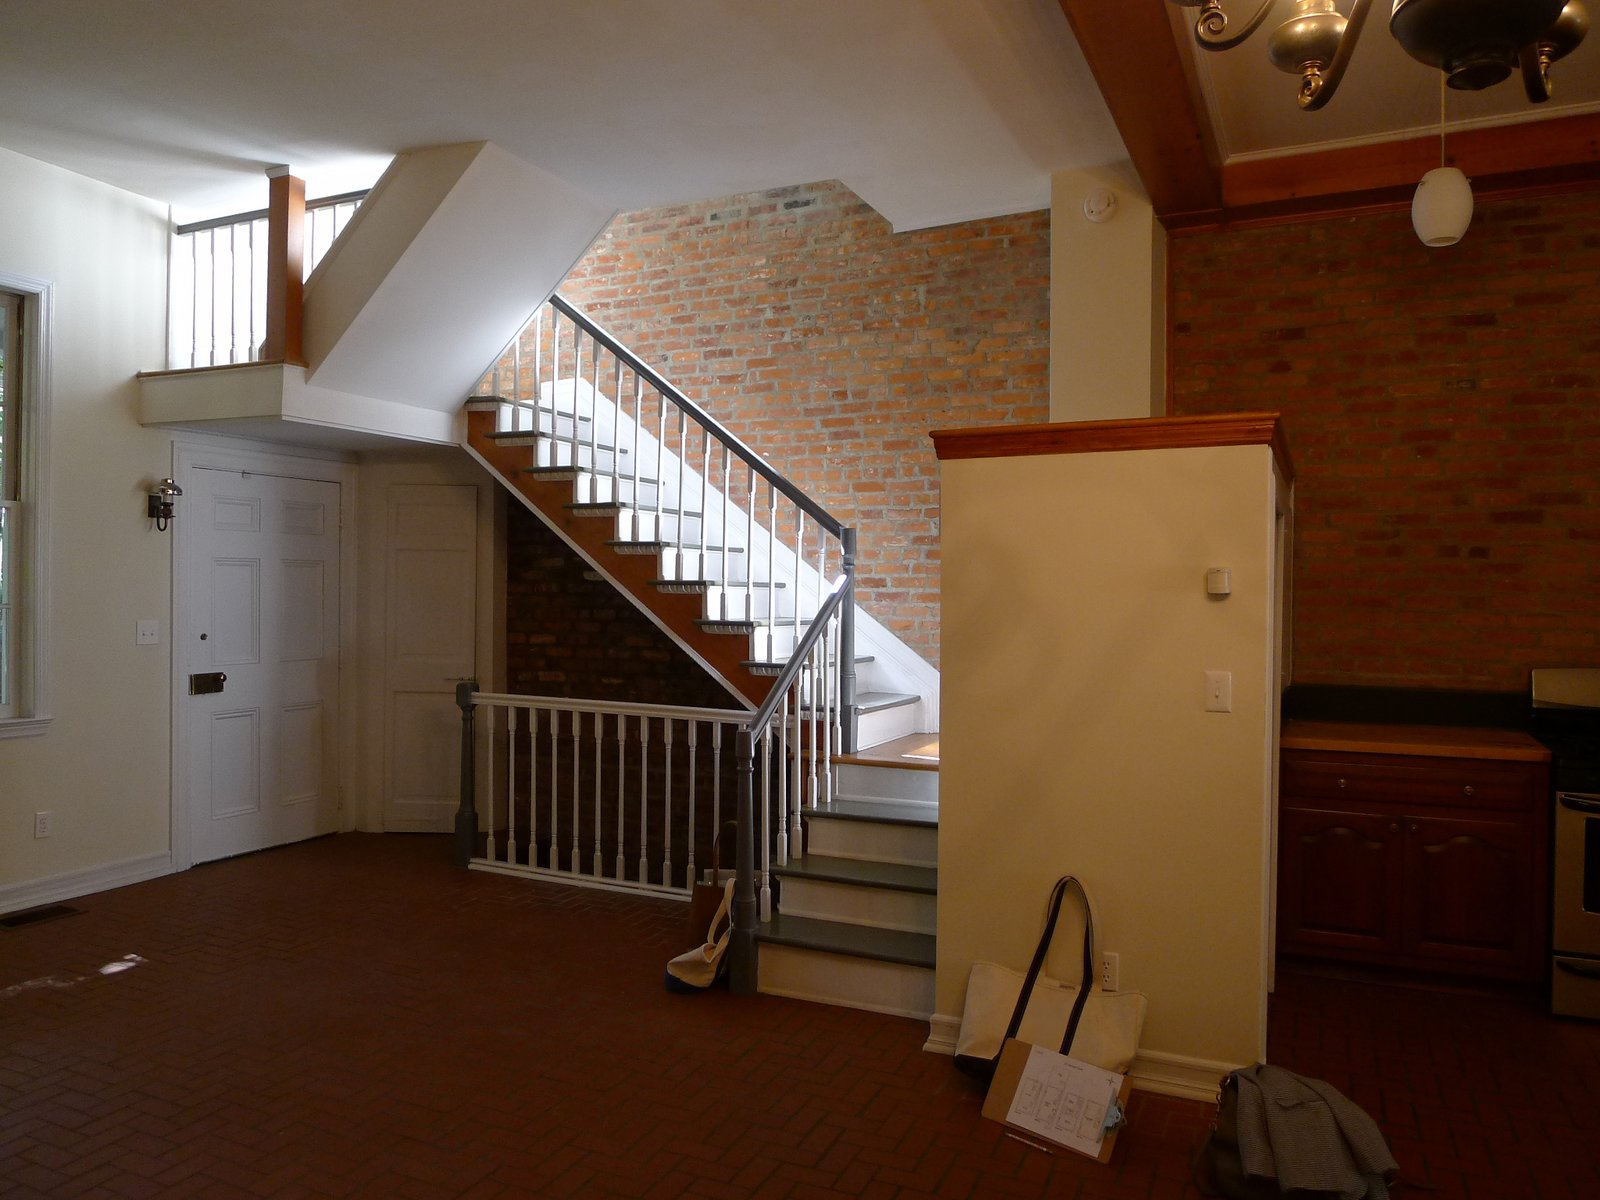 The biggest architectural maneuver in the renovation was moving the staircase to allow for a more spacious kitchen. In this view, you can see the little volume at the center that housed the refrigerator.